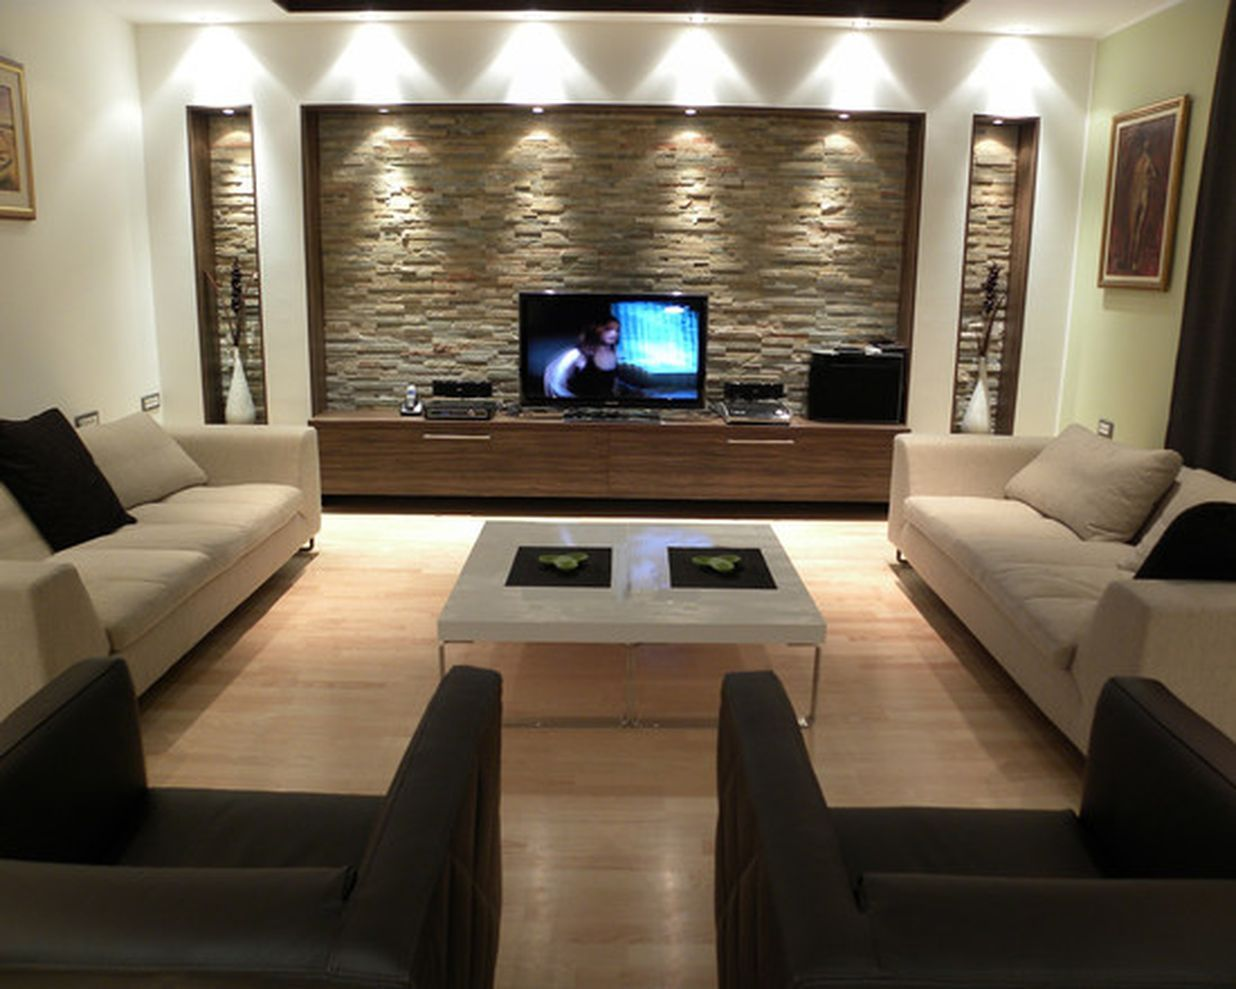 61 Simple Living Room Design Ideas With Tv Roundecor Modern